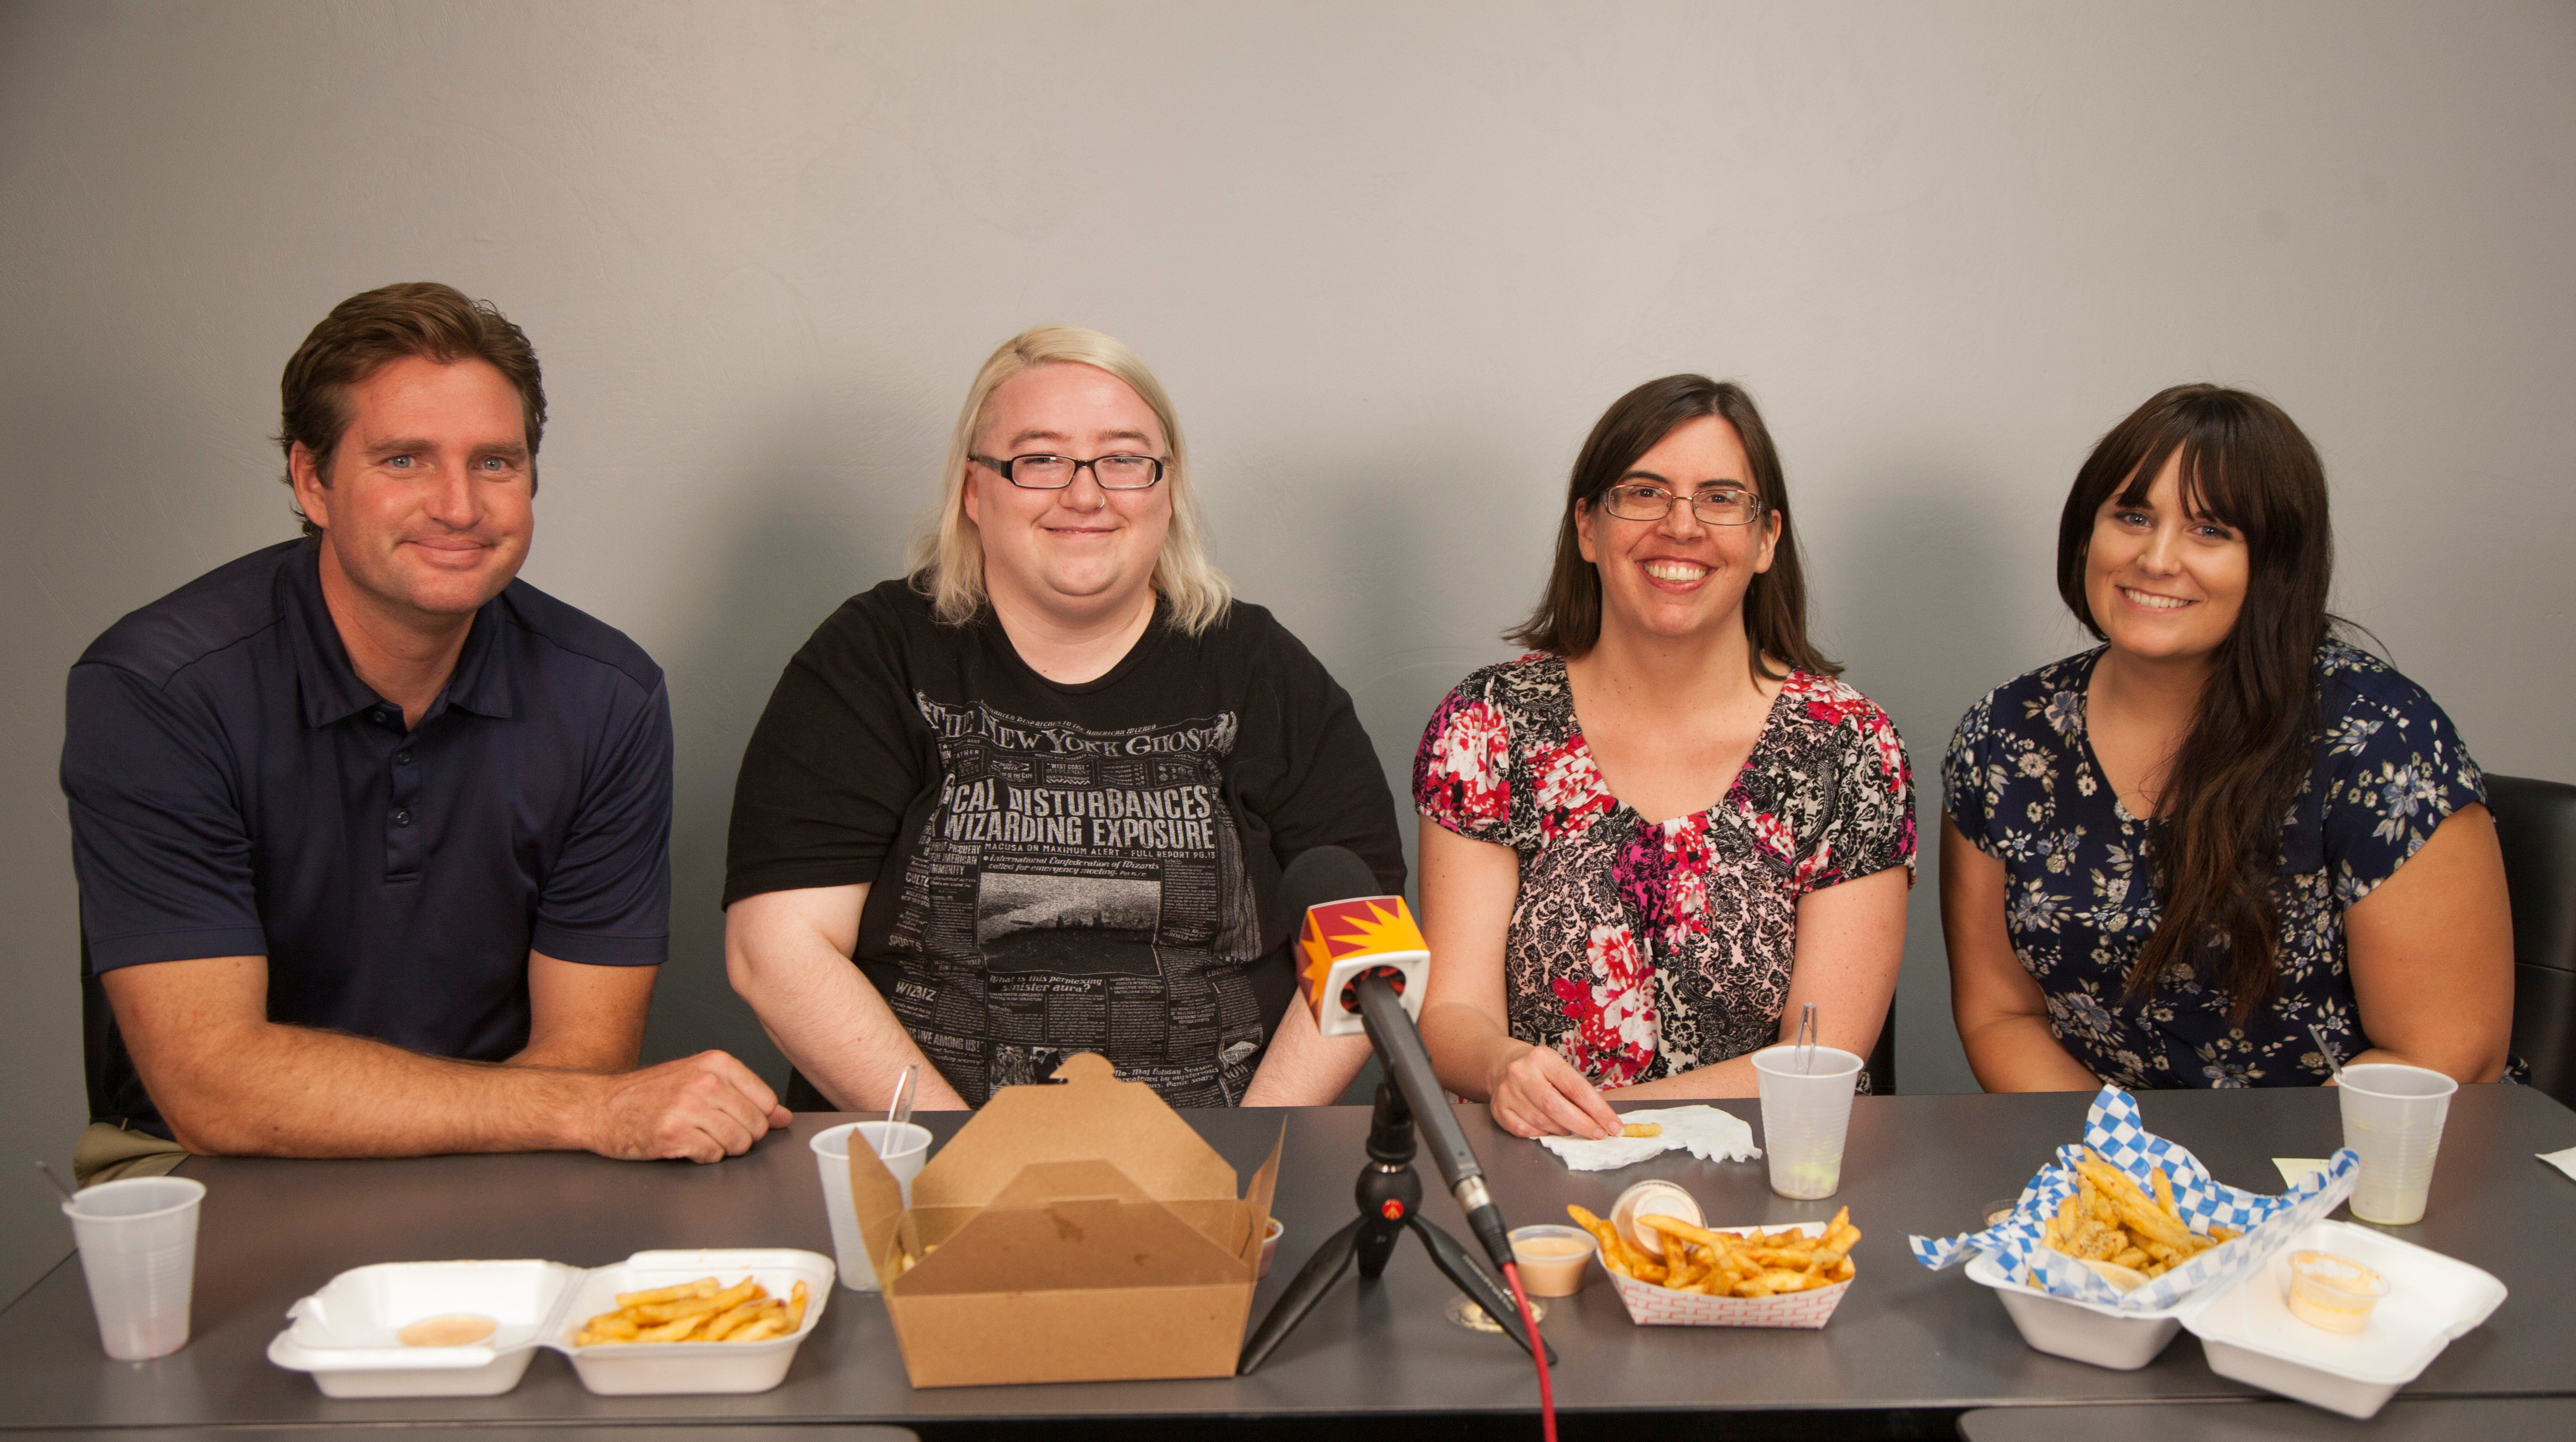 Spectrum staff members eliminate two more contenders in the search for the best fries in St. George Tuesday, Aug. 8, 2018.